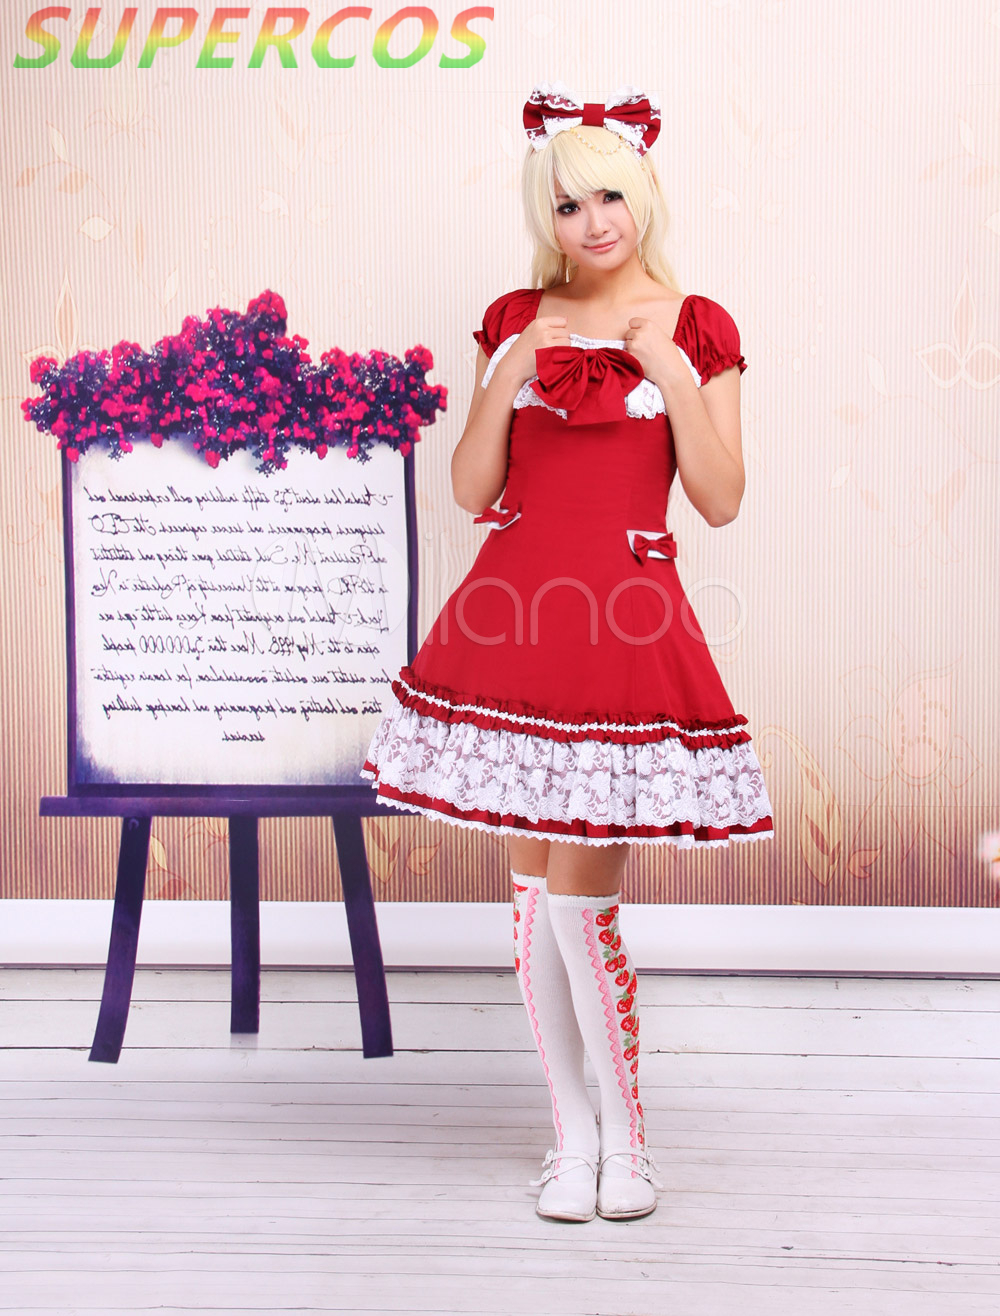 Free shipping! New Arrivals! High Quality! Sweet Red Short Sleeves Cotton School Lolita DressОдежда и ак�е��уары<br><br><br>Aliexpress